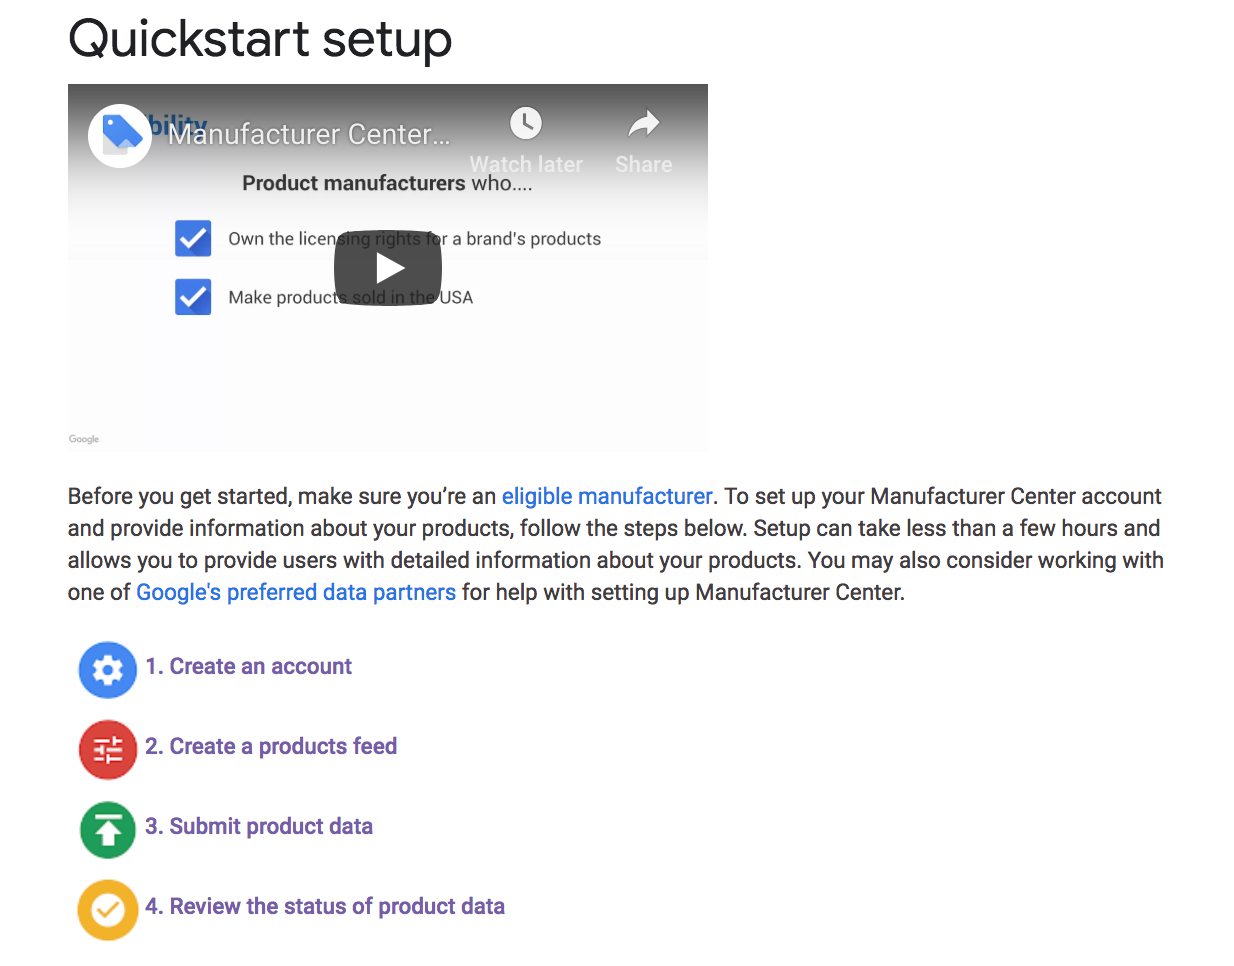 For all the details on maximizing your products feed, be sure to check out Google's helpful quickstart setup guide.